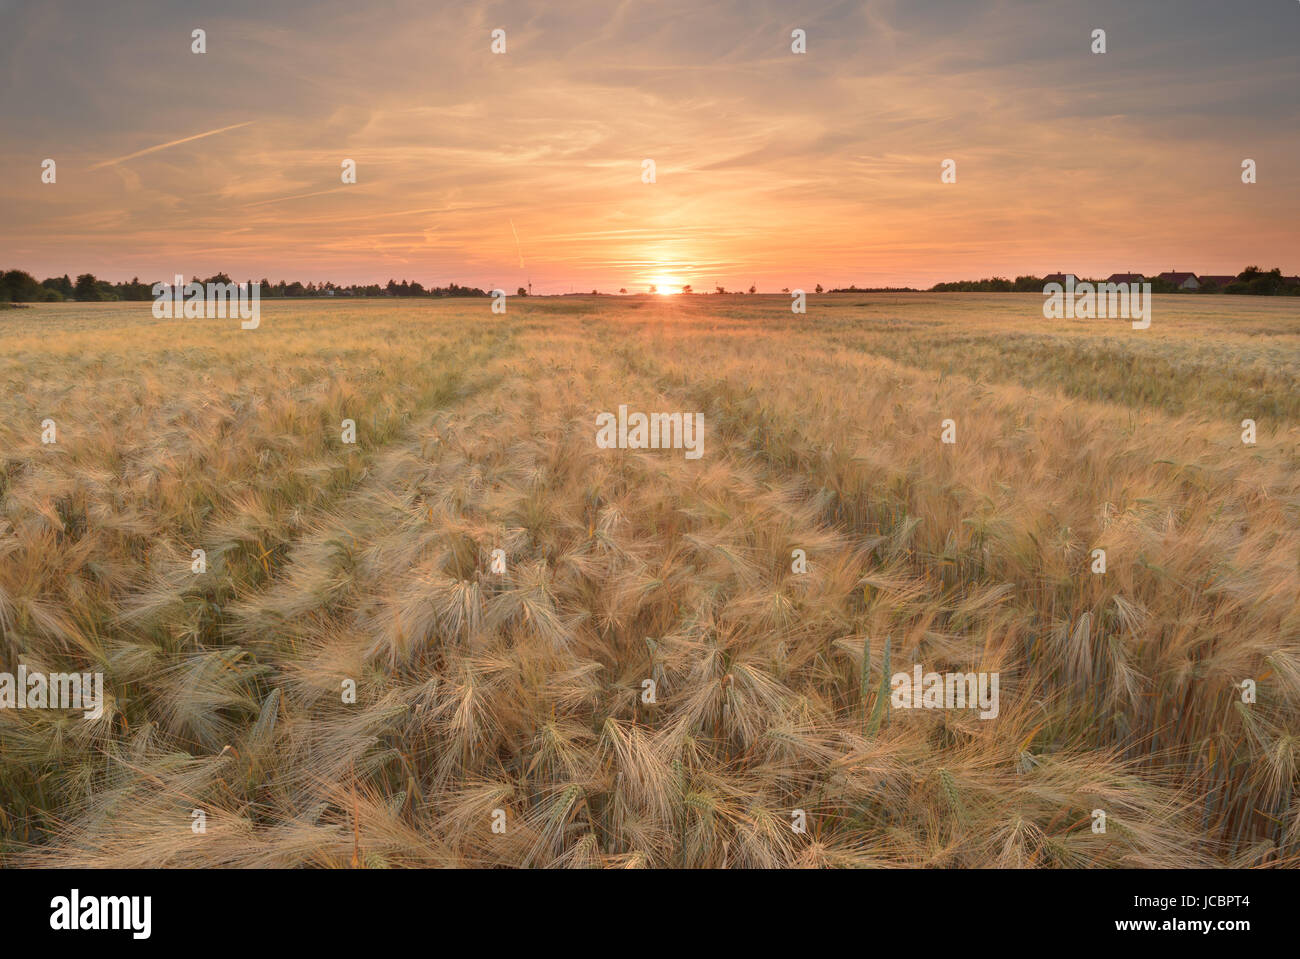 A cereal is any grass cultivated for the edible components of its grain (botanically, a type of fruit called a caryopsis), Stock Photo